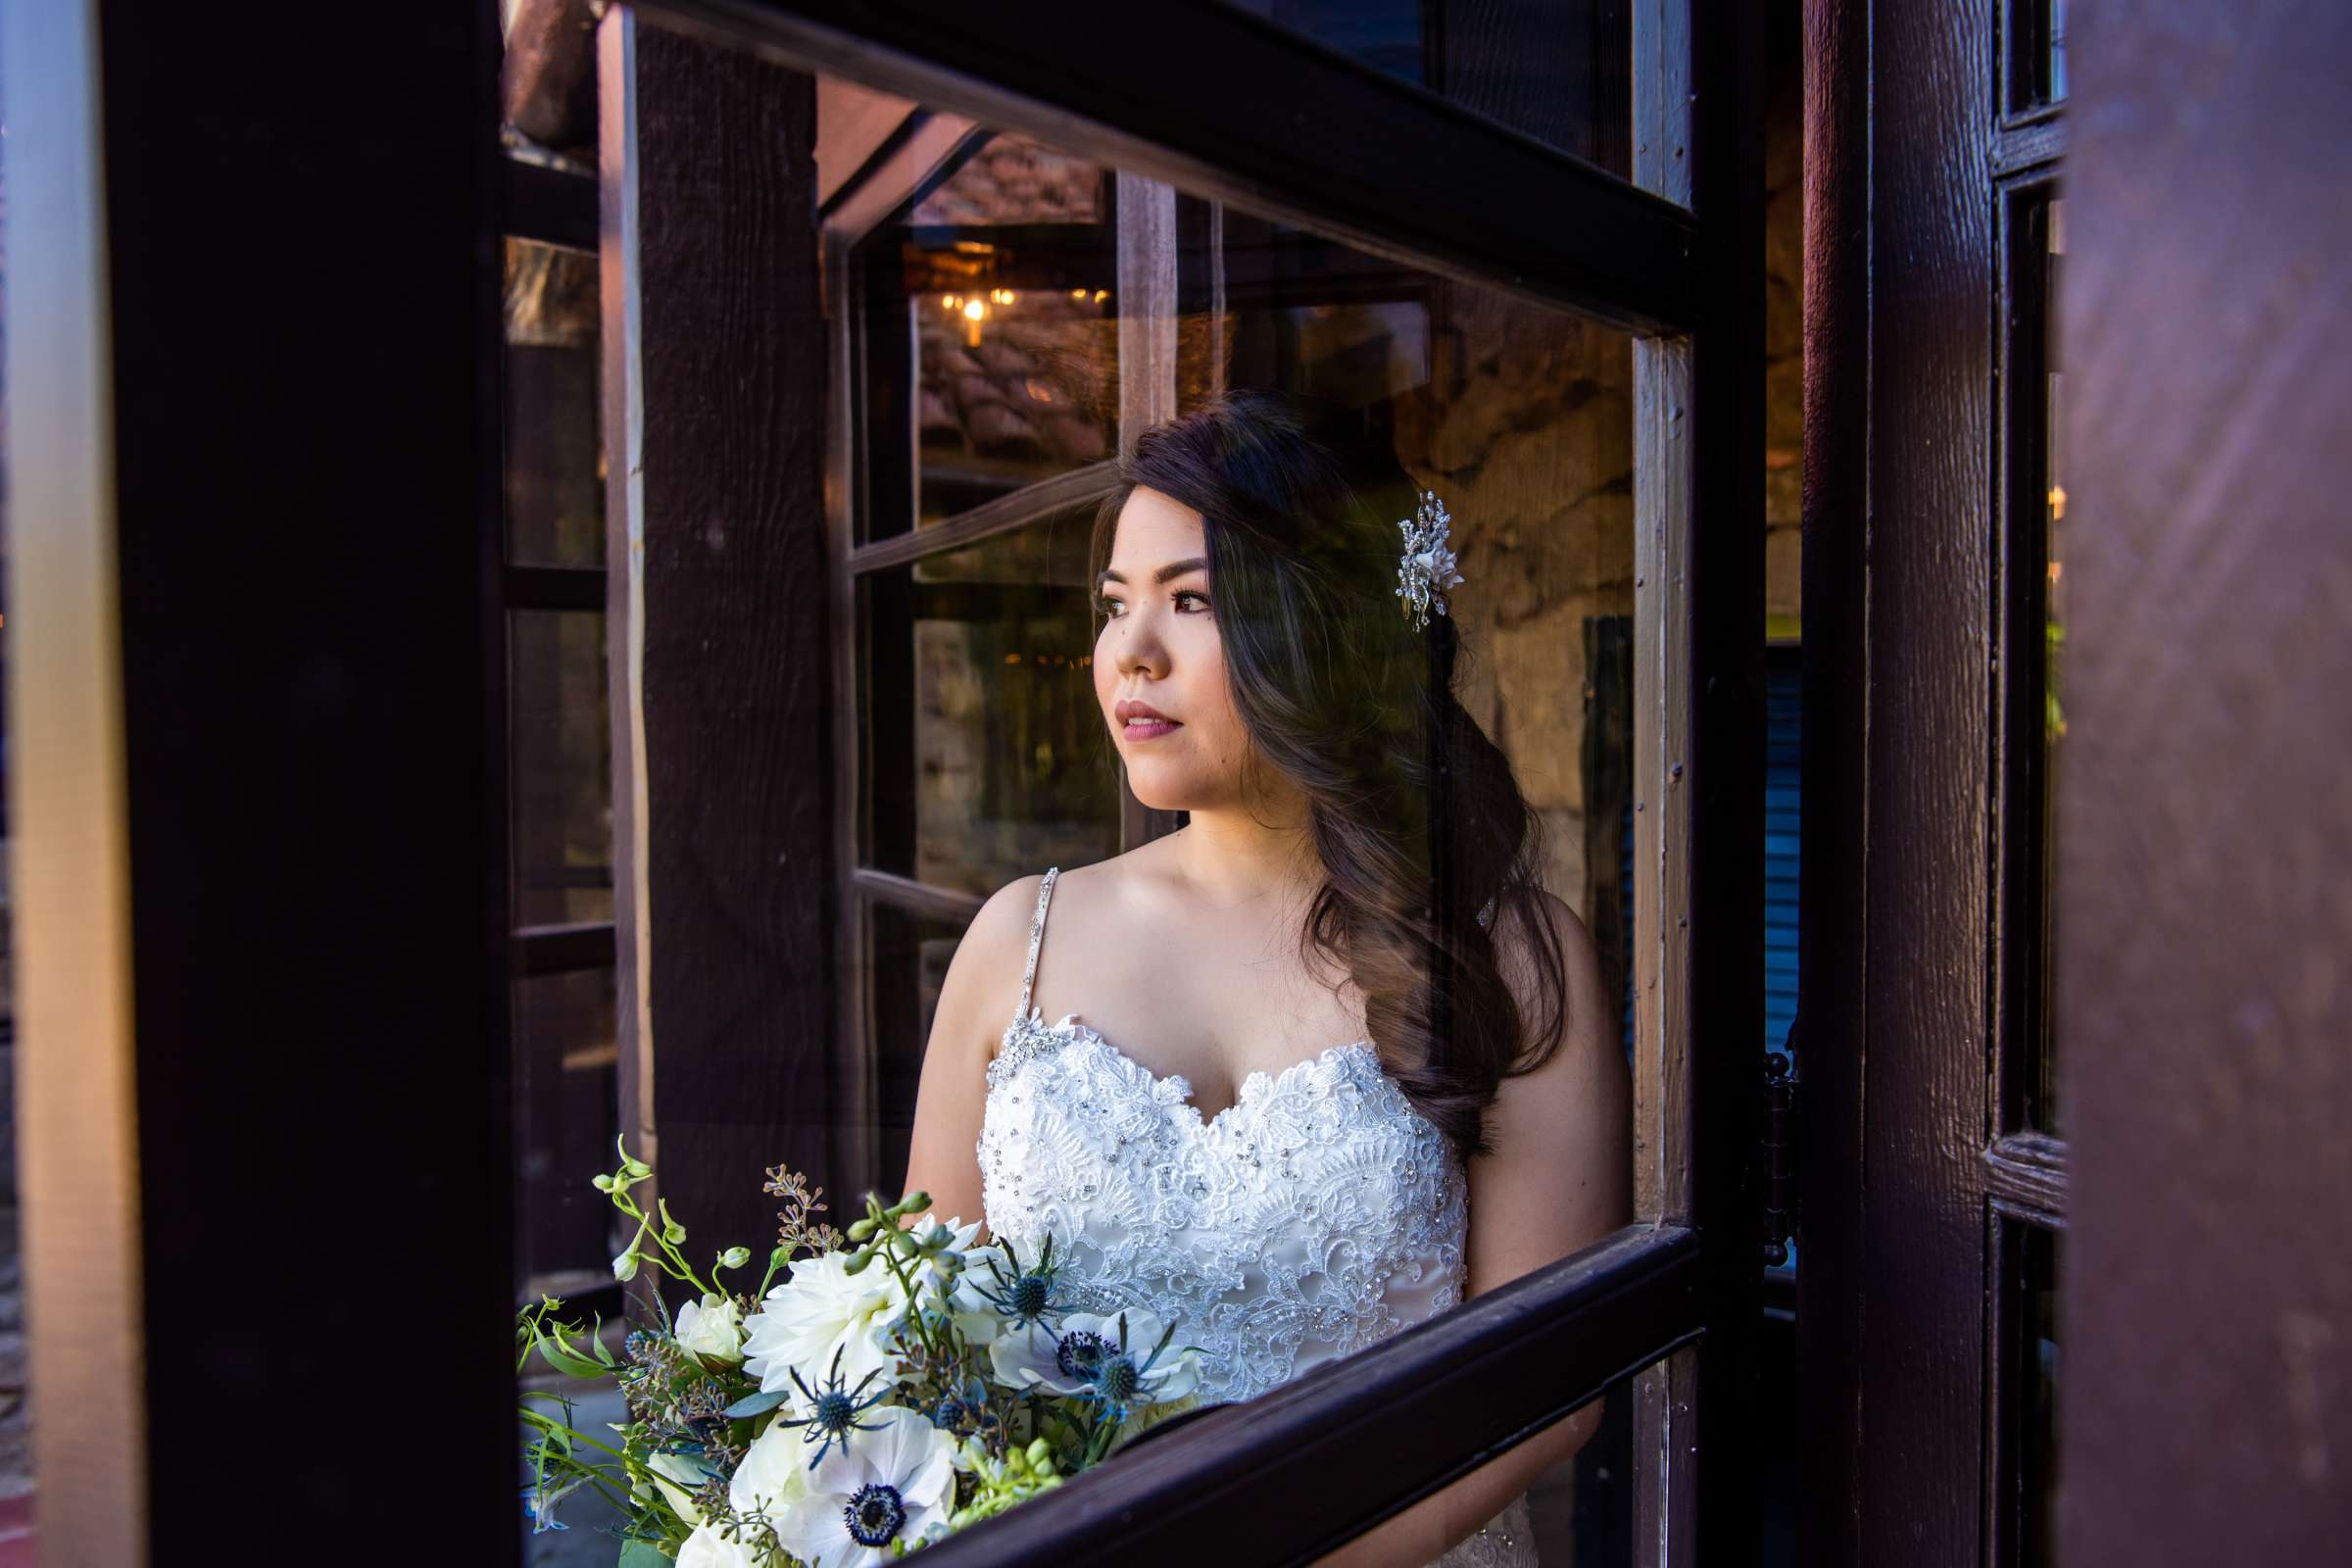 Mt Woodson Castle Wedding coordinated by I Do Weddings, Aya and Jared Wedding Photo #486921 by True Photography